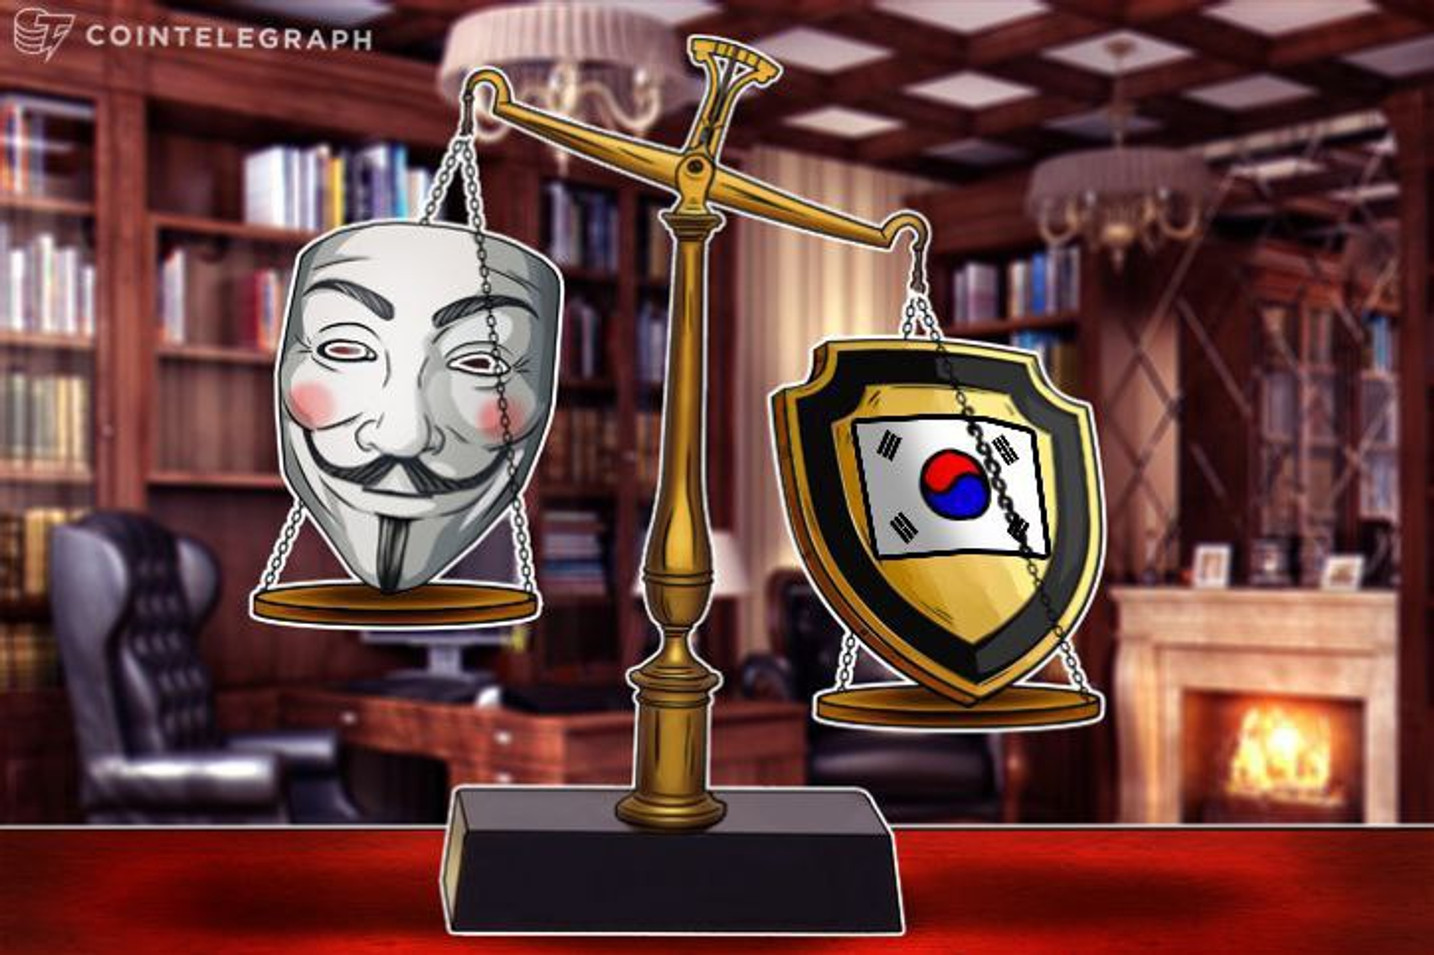 S. Korea Responds To Public Petition: No Crypto Trading Ban, But Gov't 'Still Divided'